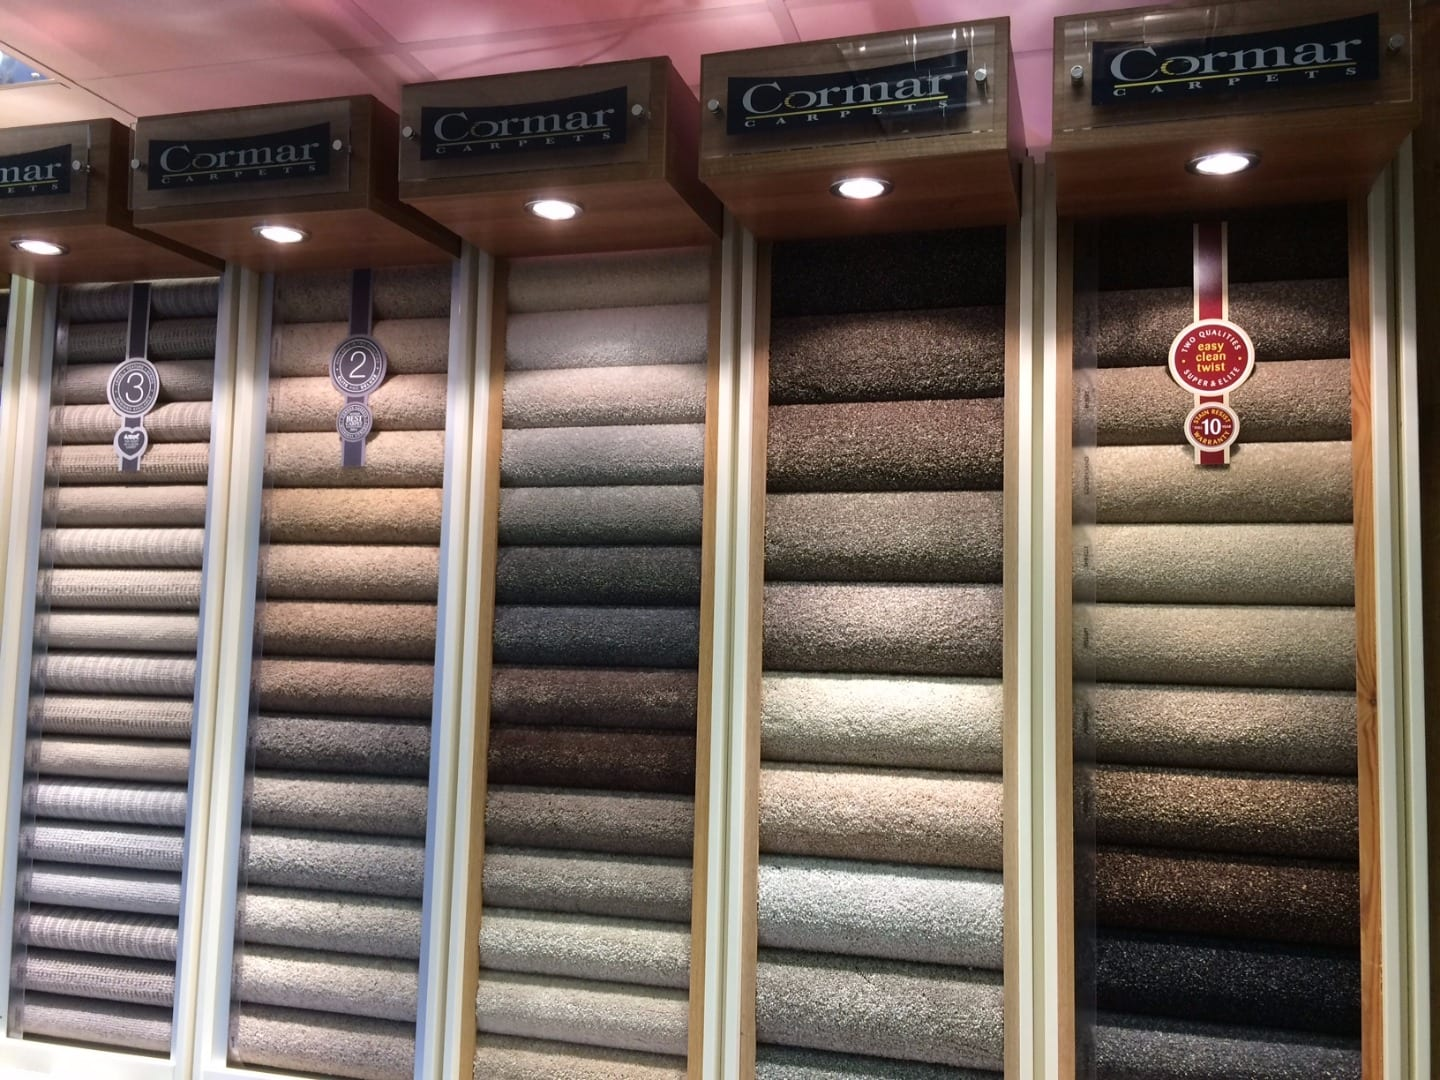 Sample service at the Carpet Store Poulton